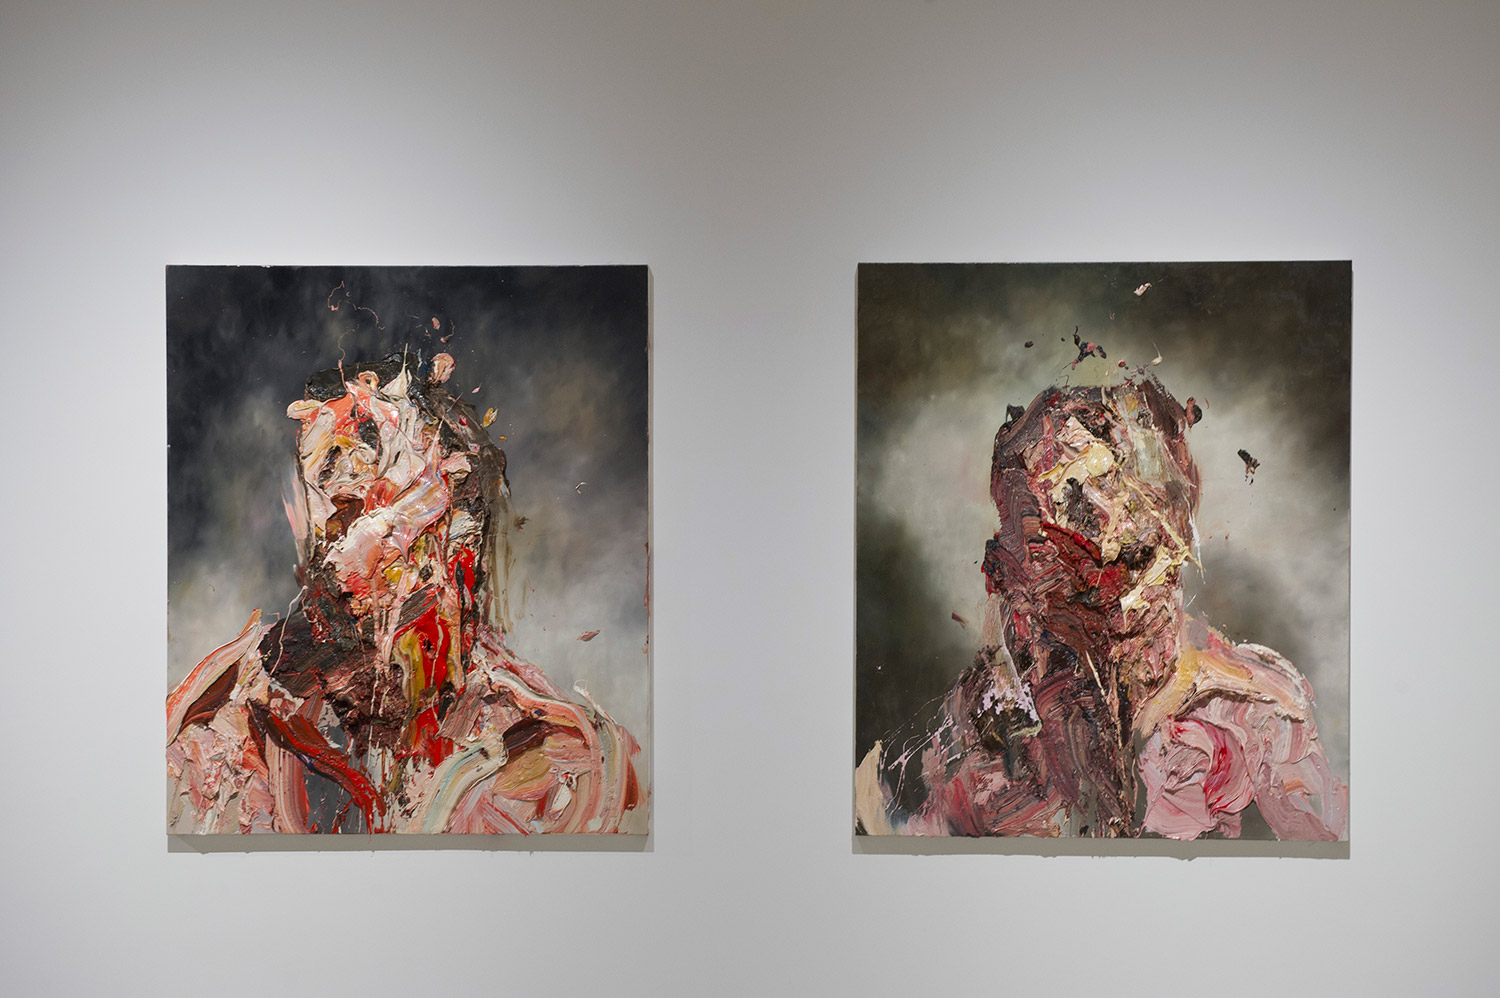 Antony Micallef - two portraits